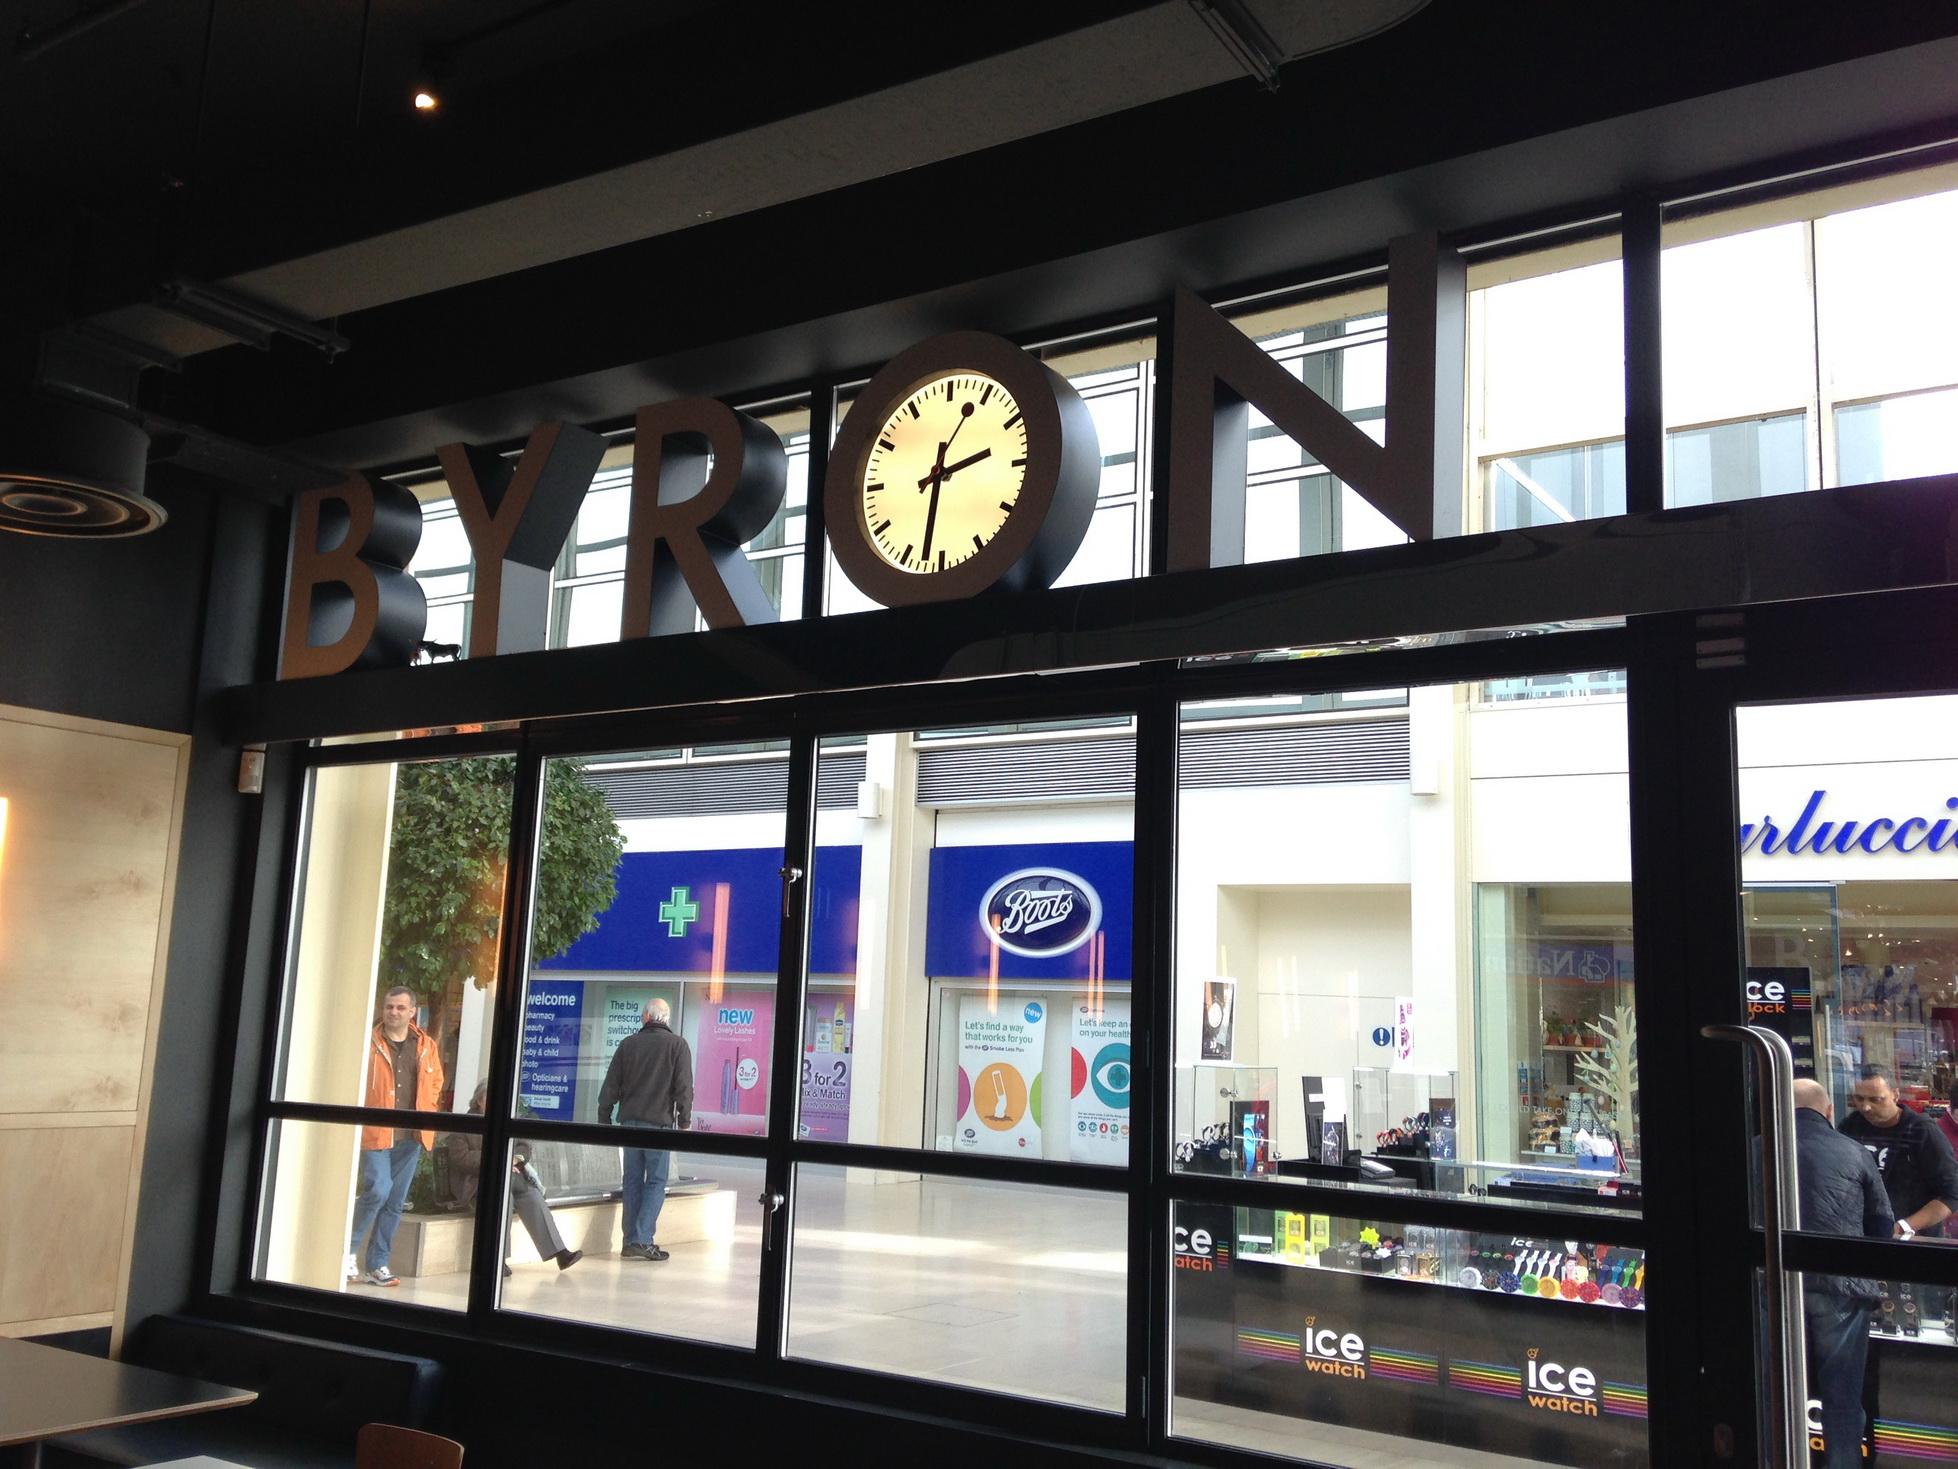 Shop front clock in sign